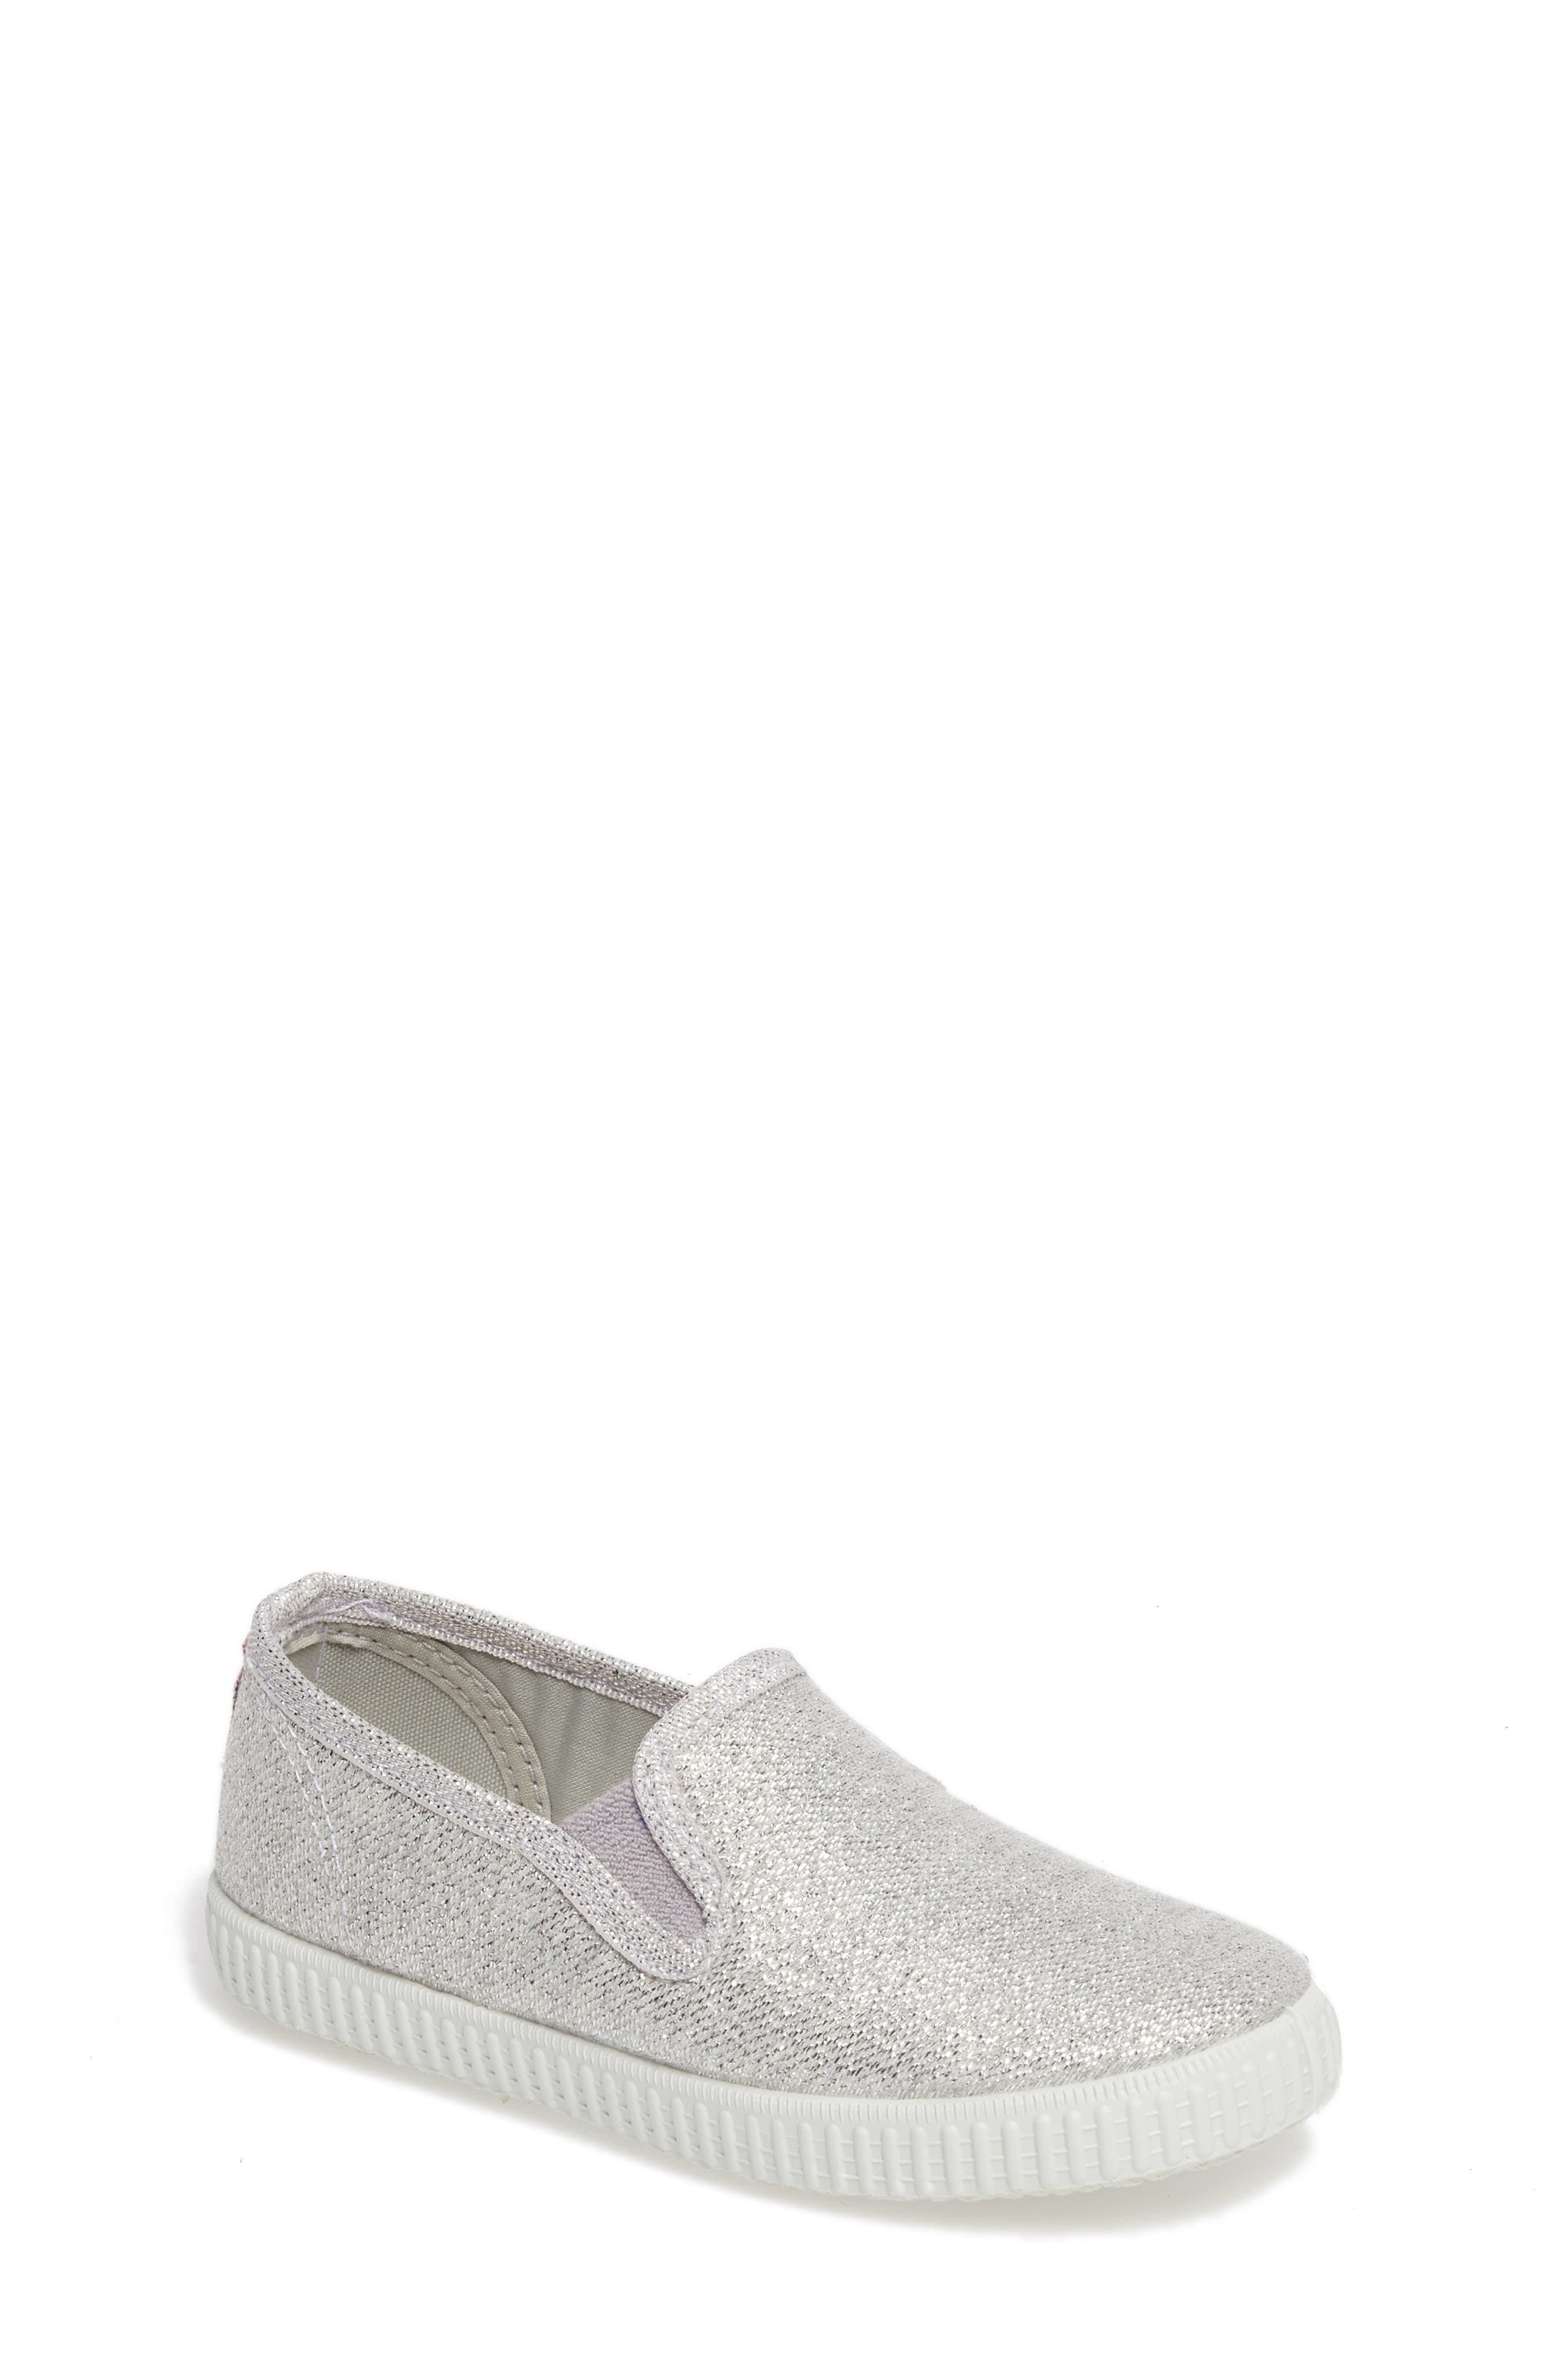 Cienta Glitter Slip-On Sneaker (Baby, Walker, Toddler and Little Kid)